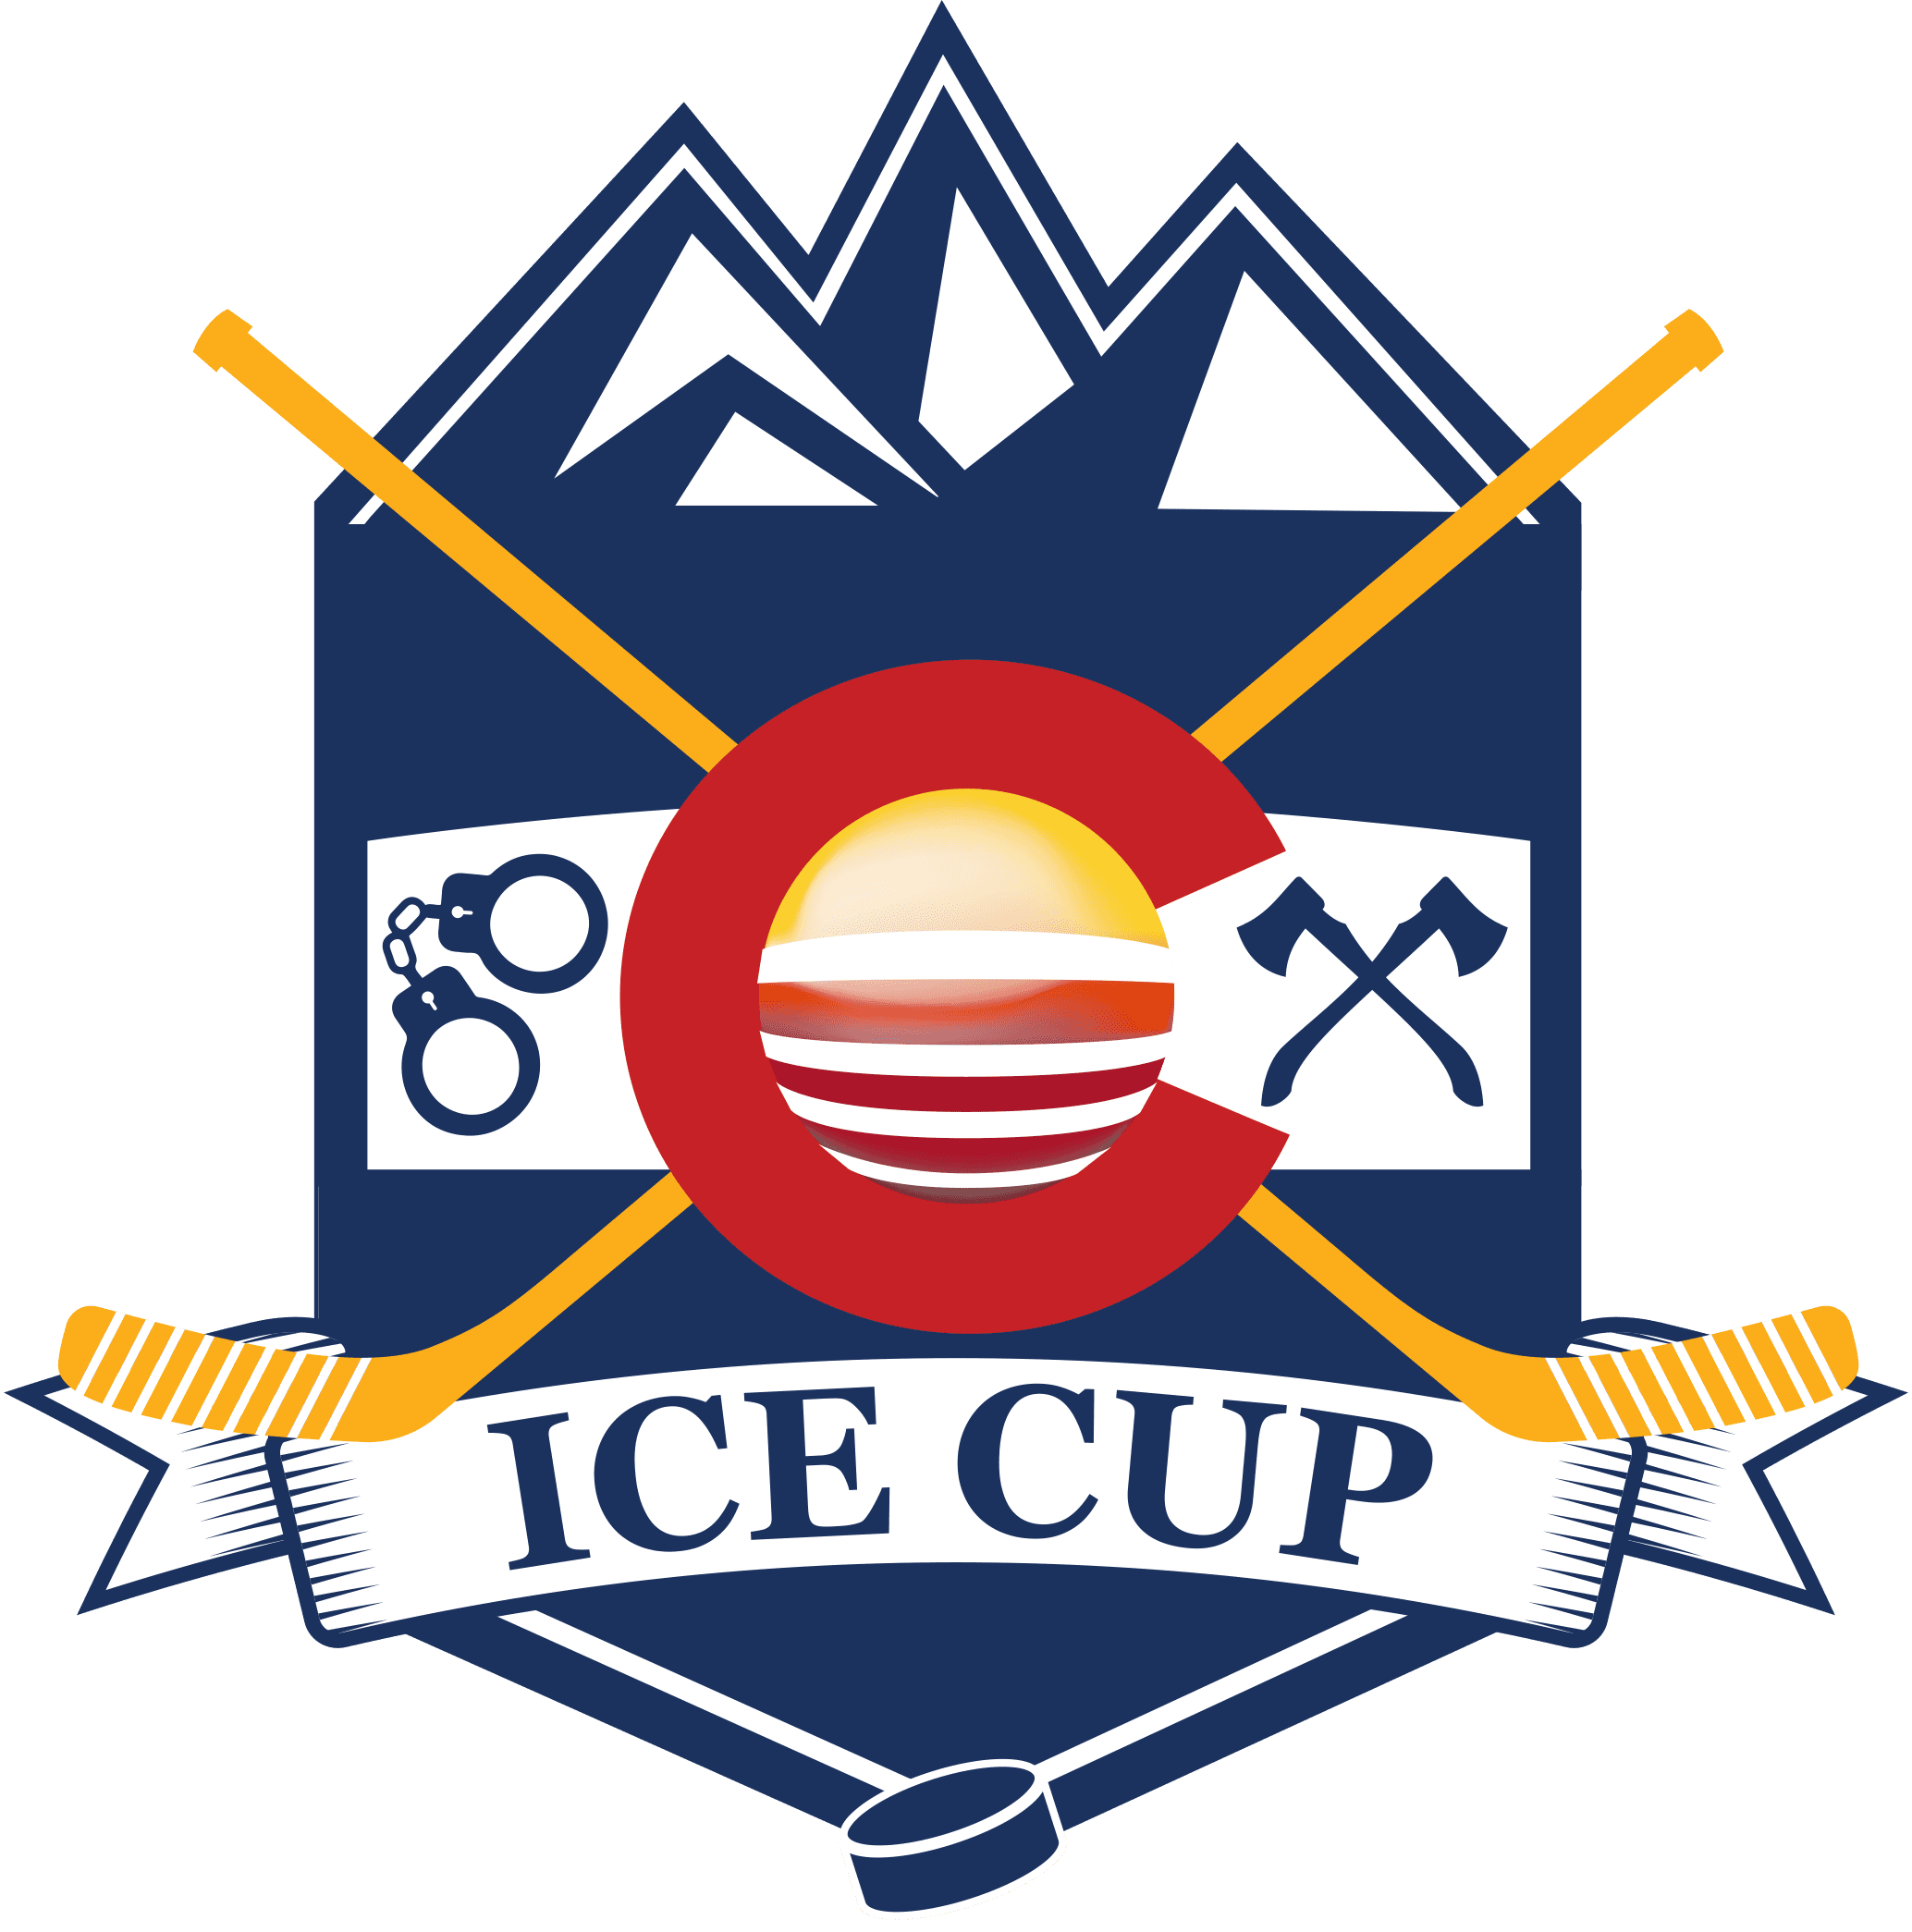 ICE CUP LOGO